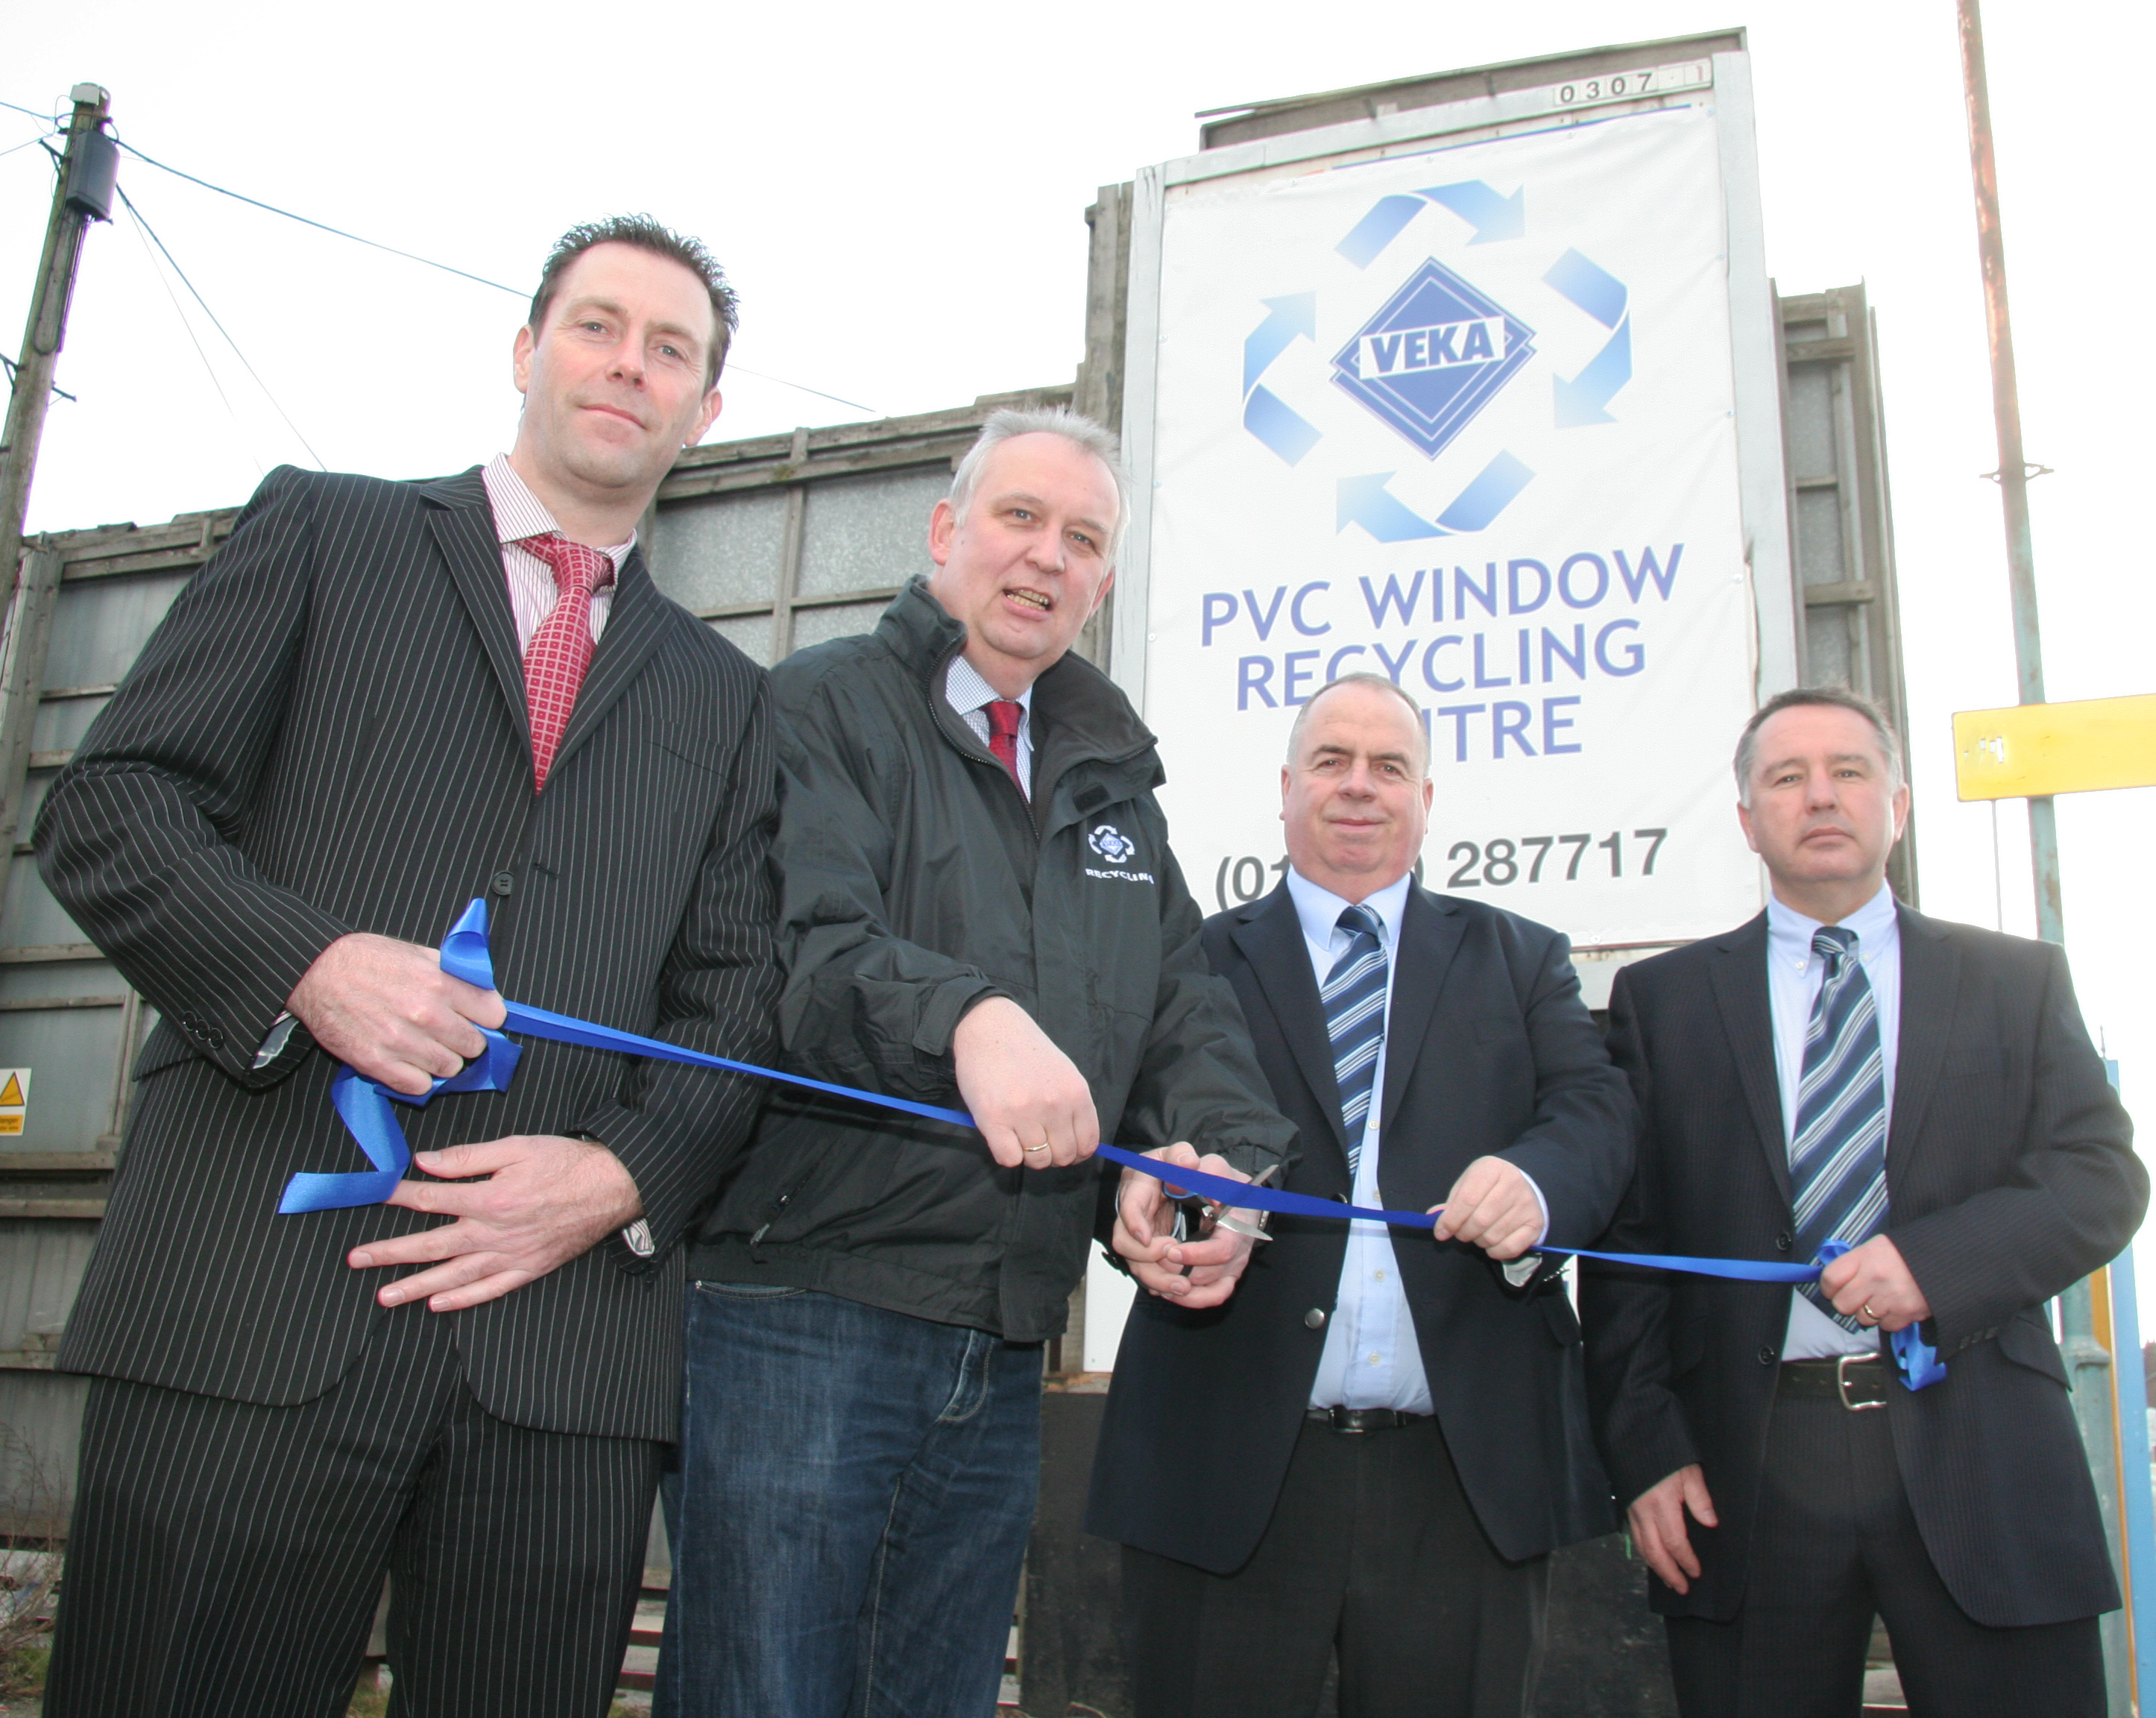 VEKA Recycling goes nationwide for small installers